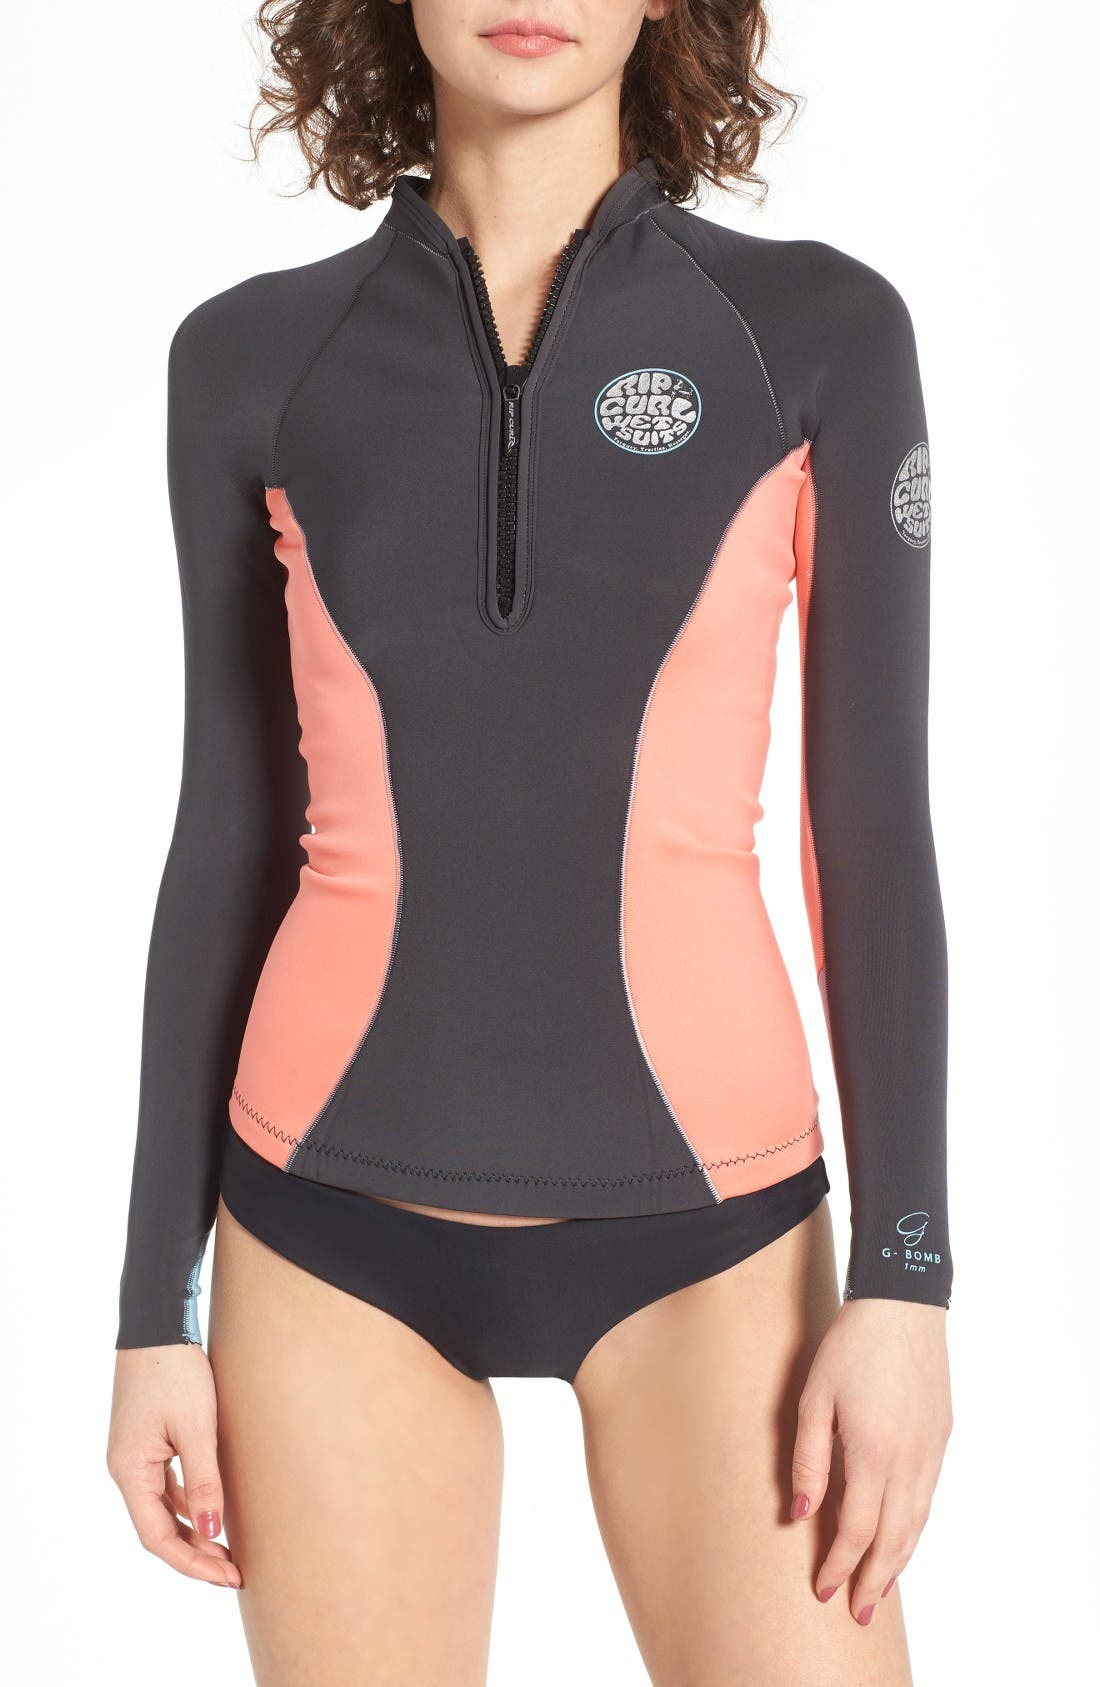 Rip Curl G-Bomb Wetsuit Jacket